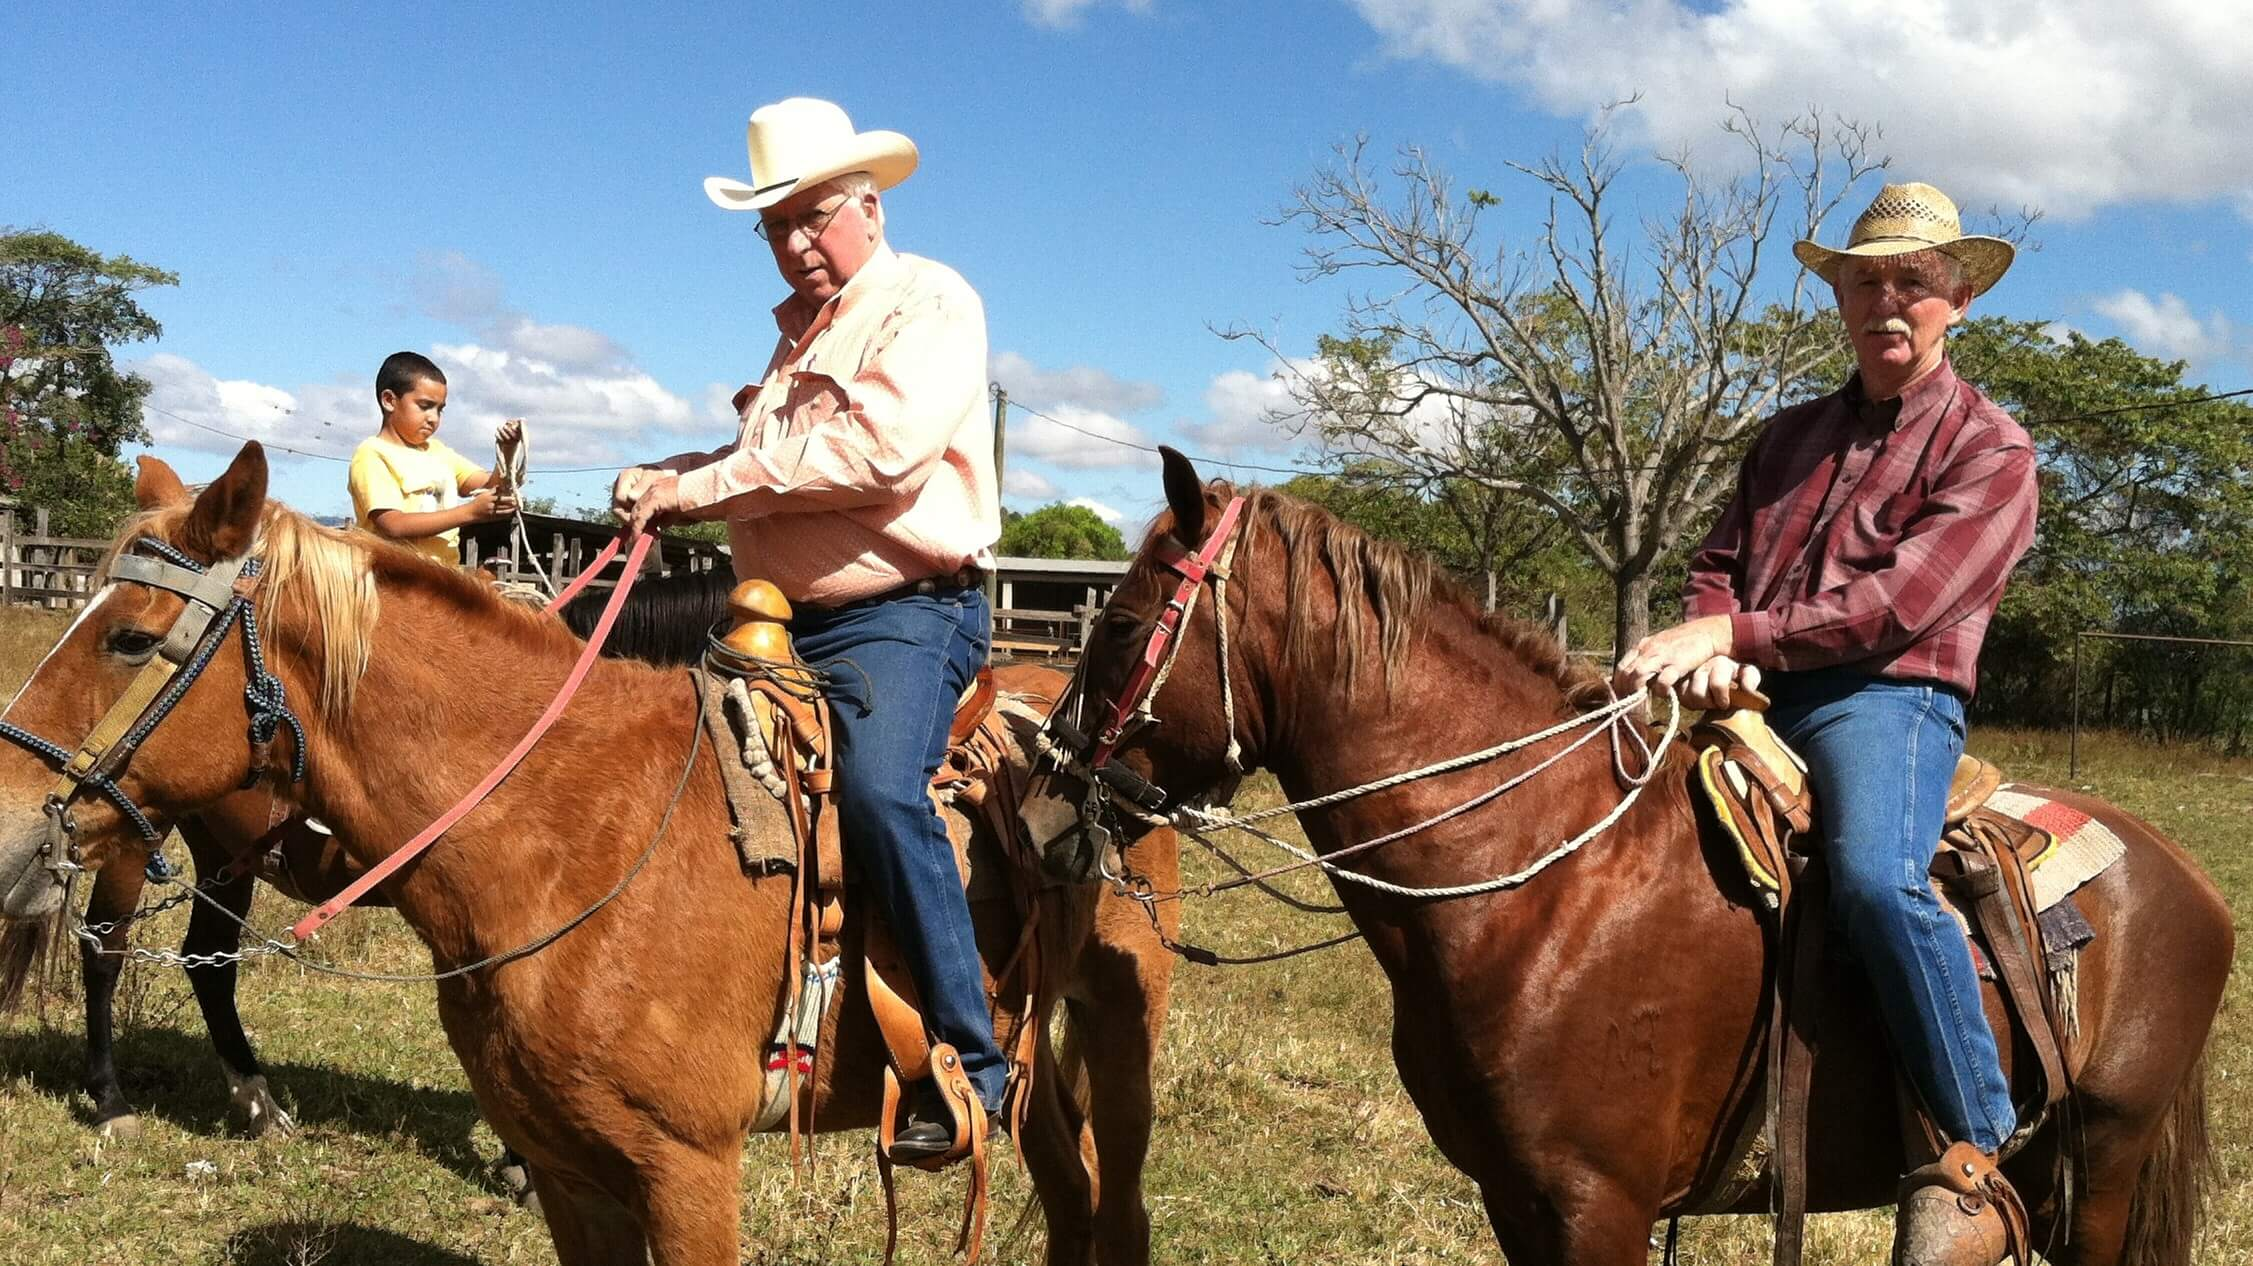 Tom Huffman and Dave Gideon, of Burwell, Nebraska on a cowboy mission trip to Guatemala in January of 2014.